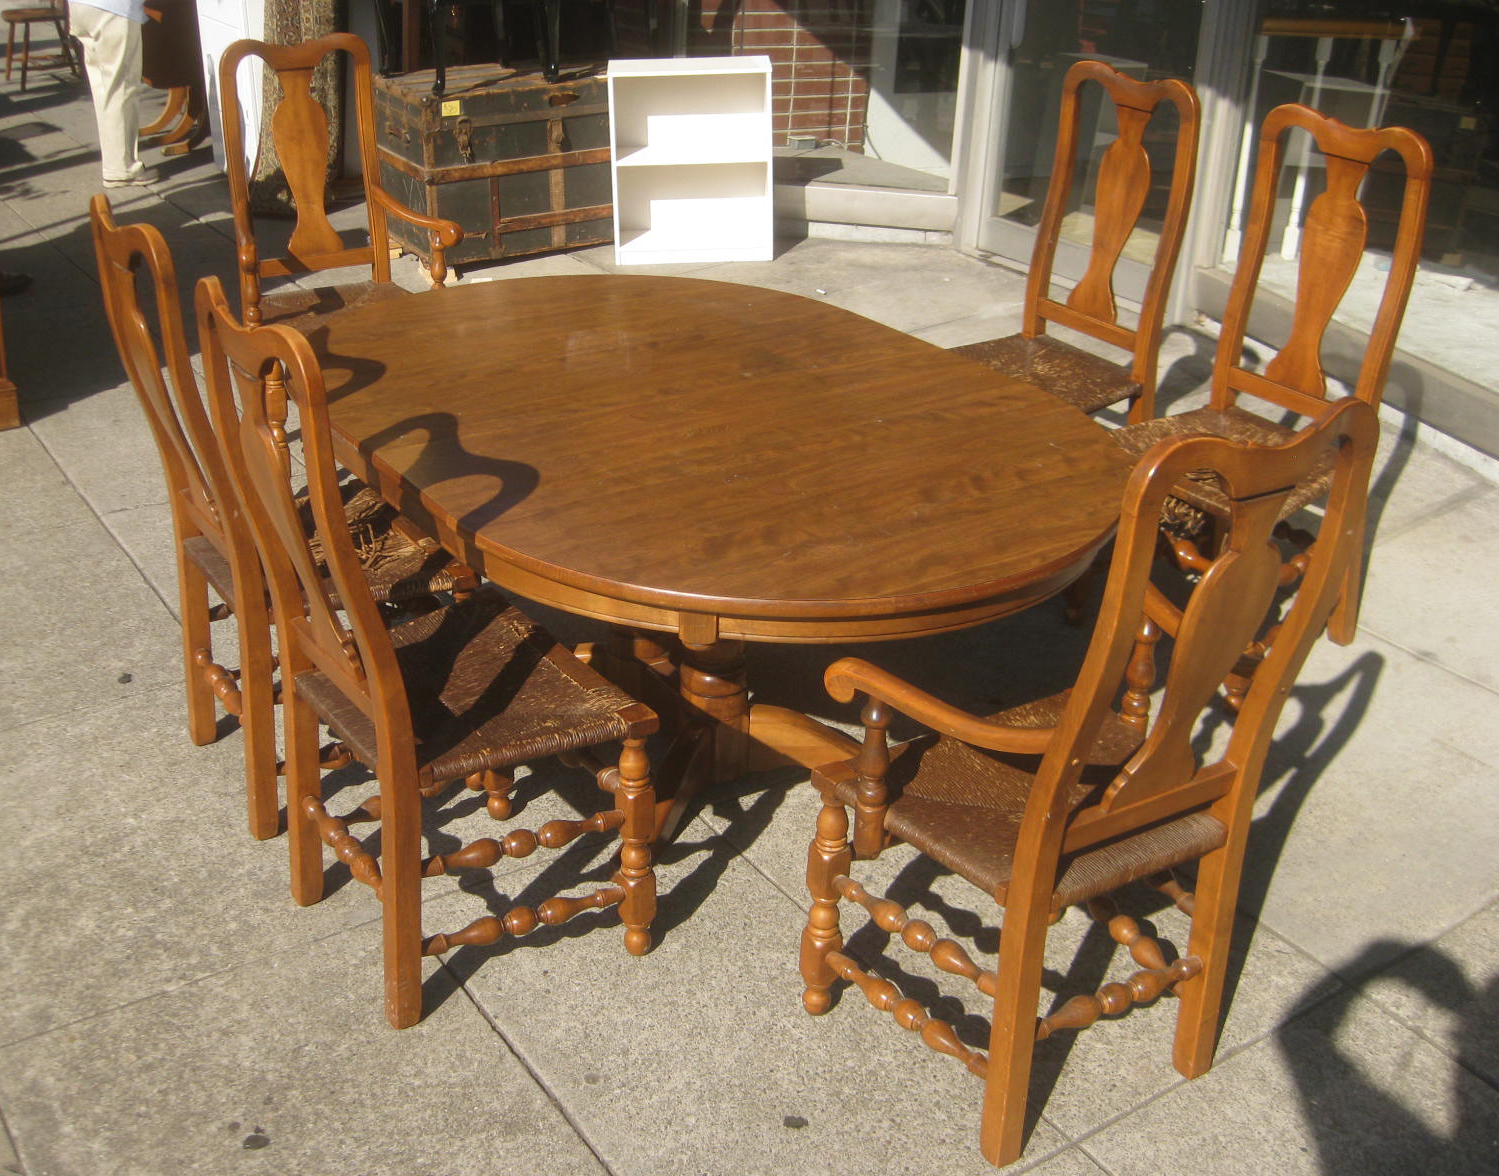 Heywood Wakefield Dining Table And Chairs Smart Chair Accessories Uhuru Furniture Collectibles Sold